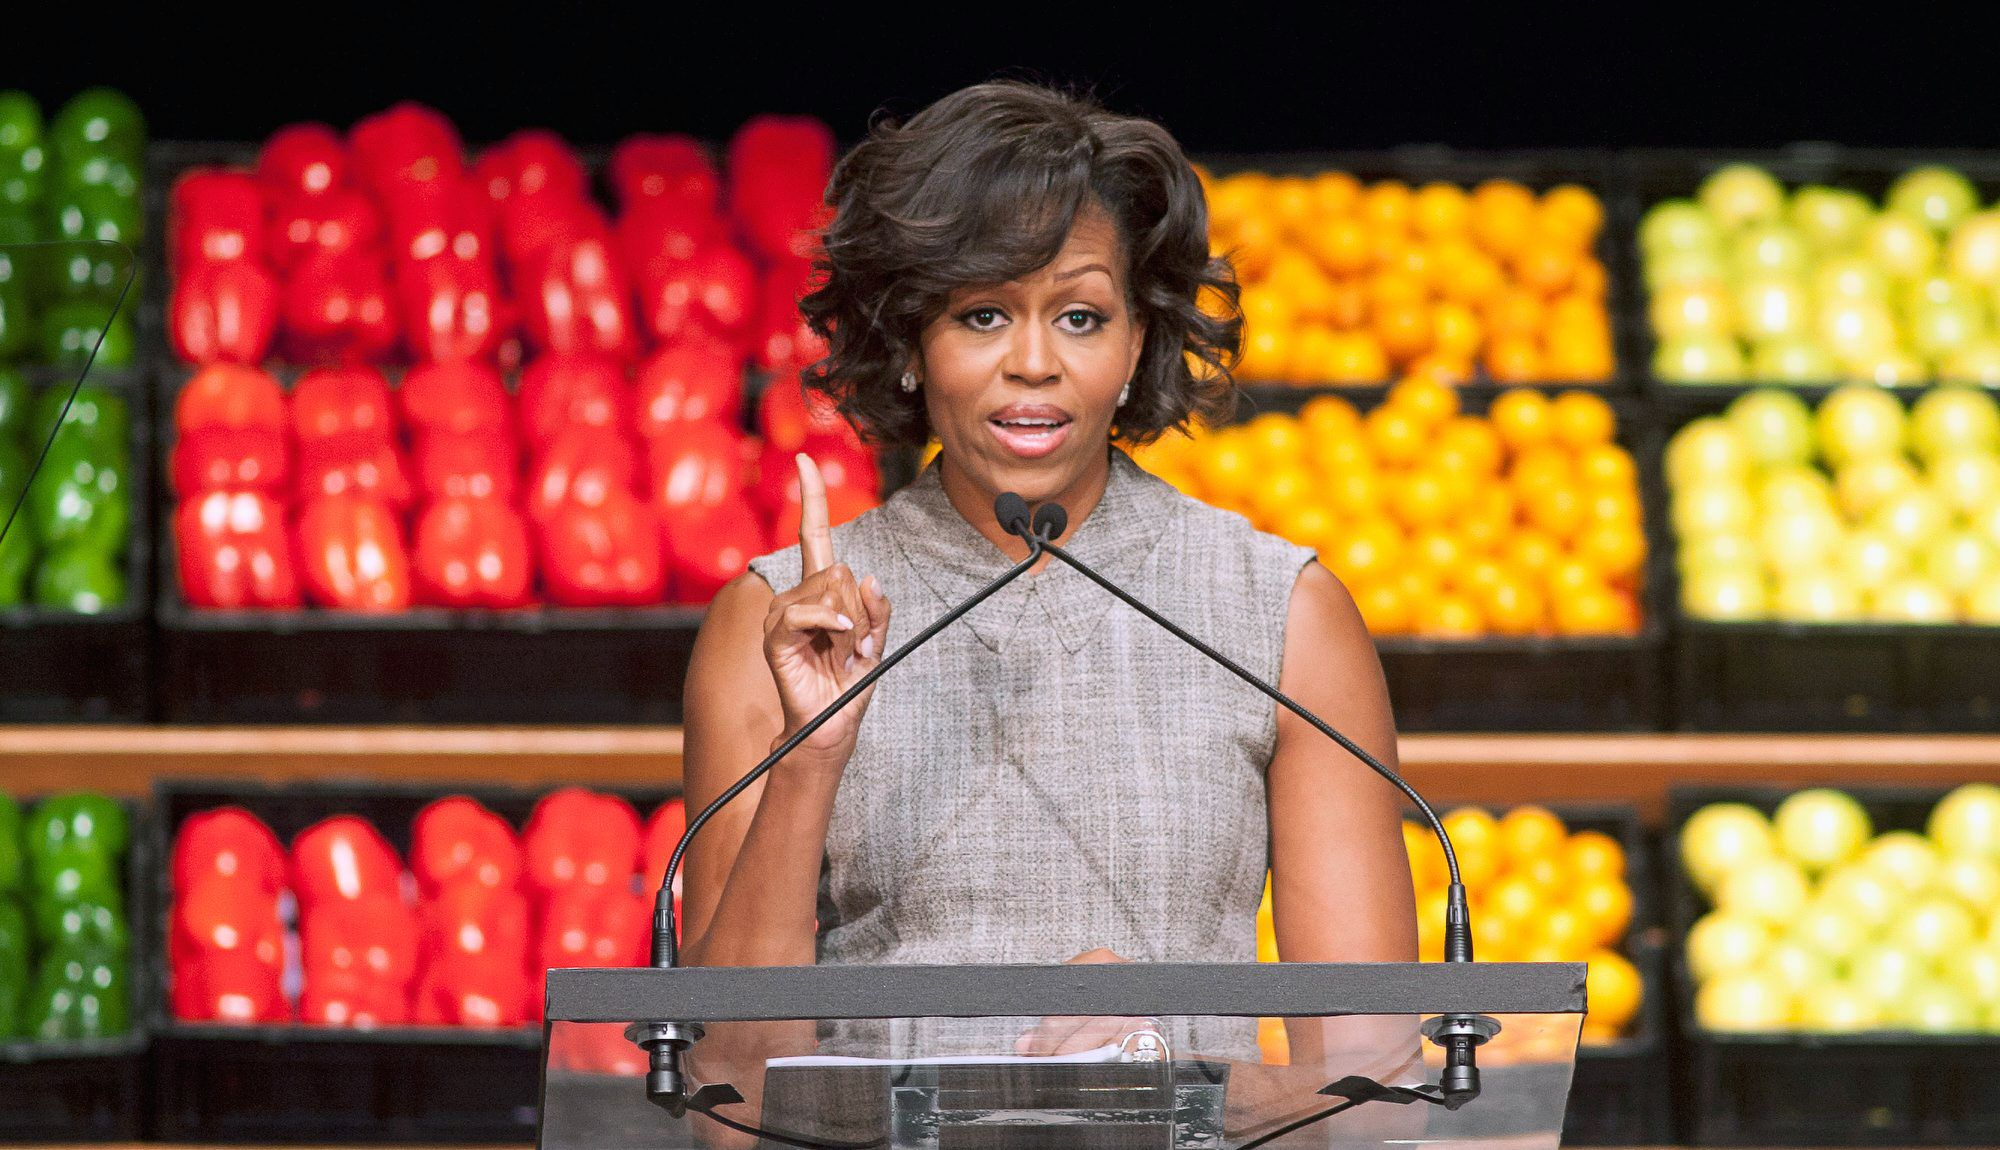 Hacked: Michelle Obama, Hillary Clinton, Biden and Hollywood heavyweights victimized